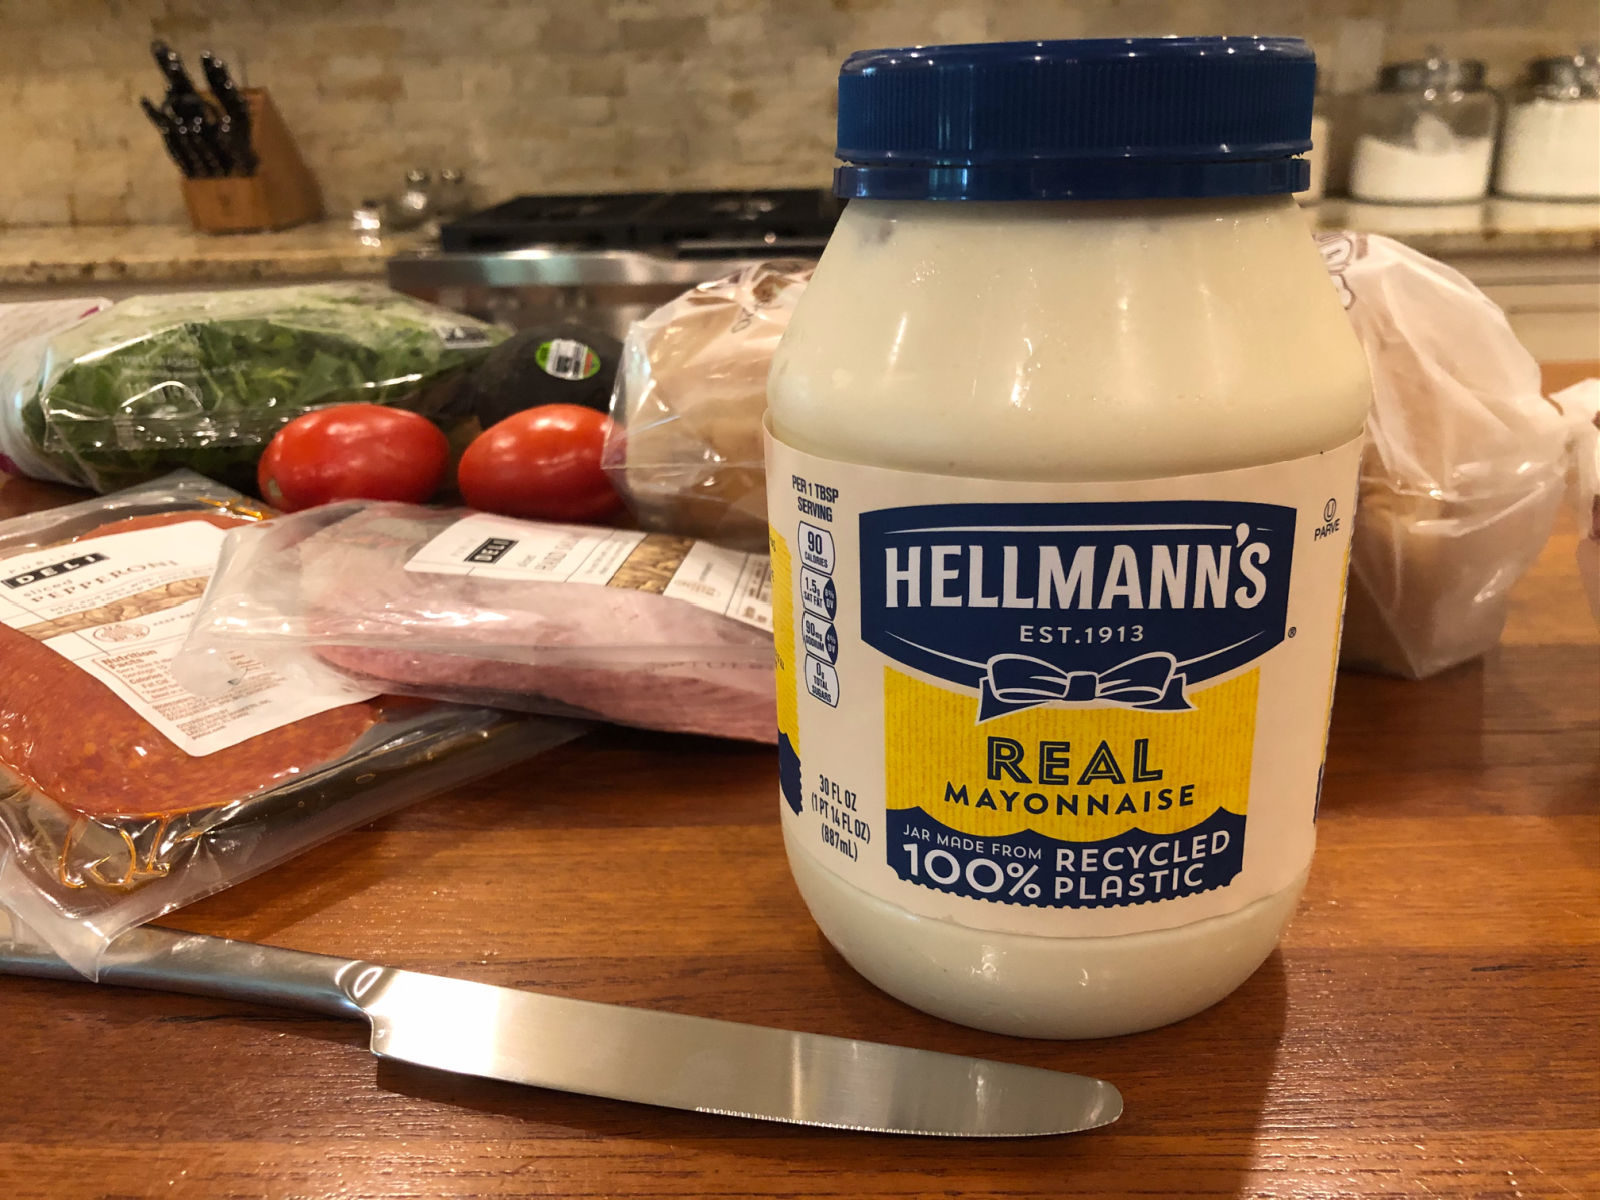 Hellmann's Mayonnaise As Low As $1.50 At Publix on I Heart Publix 1